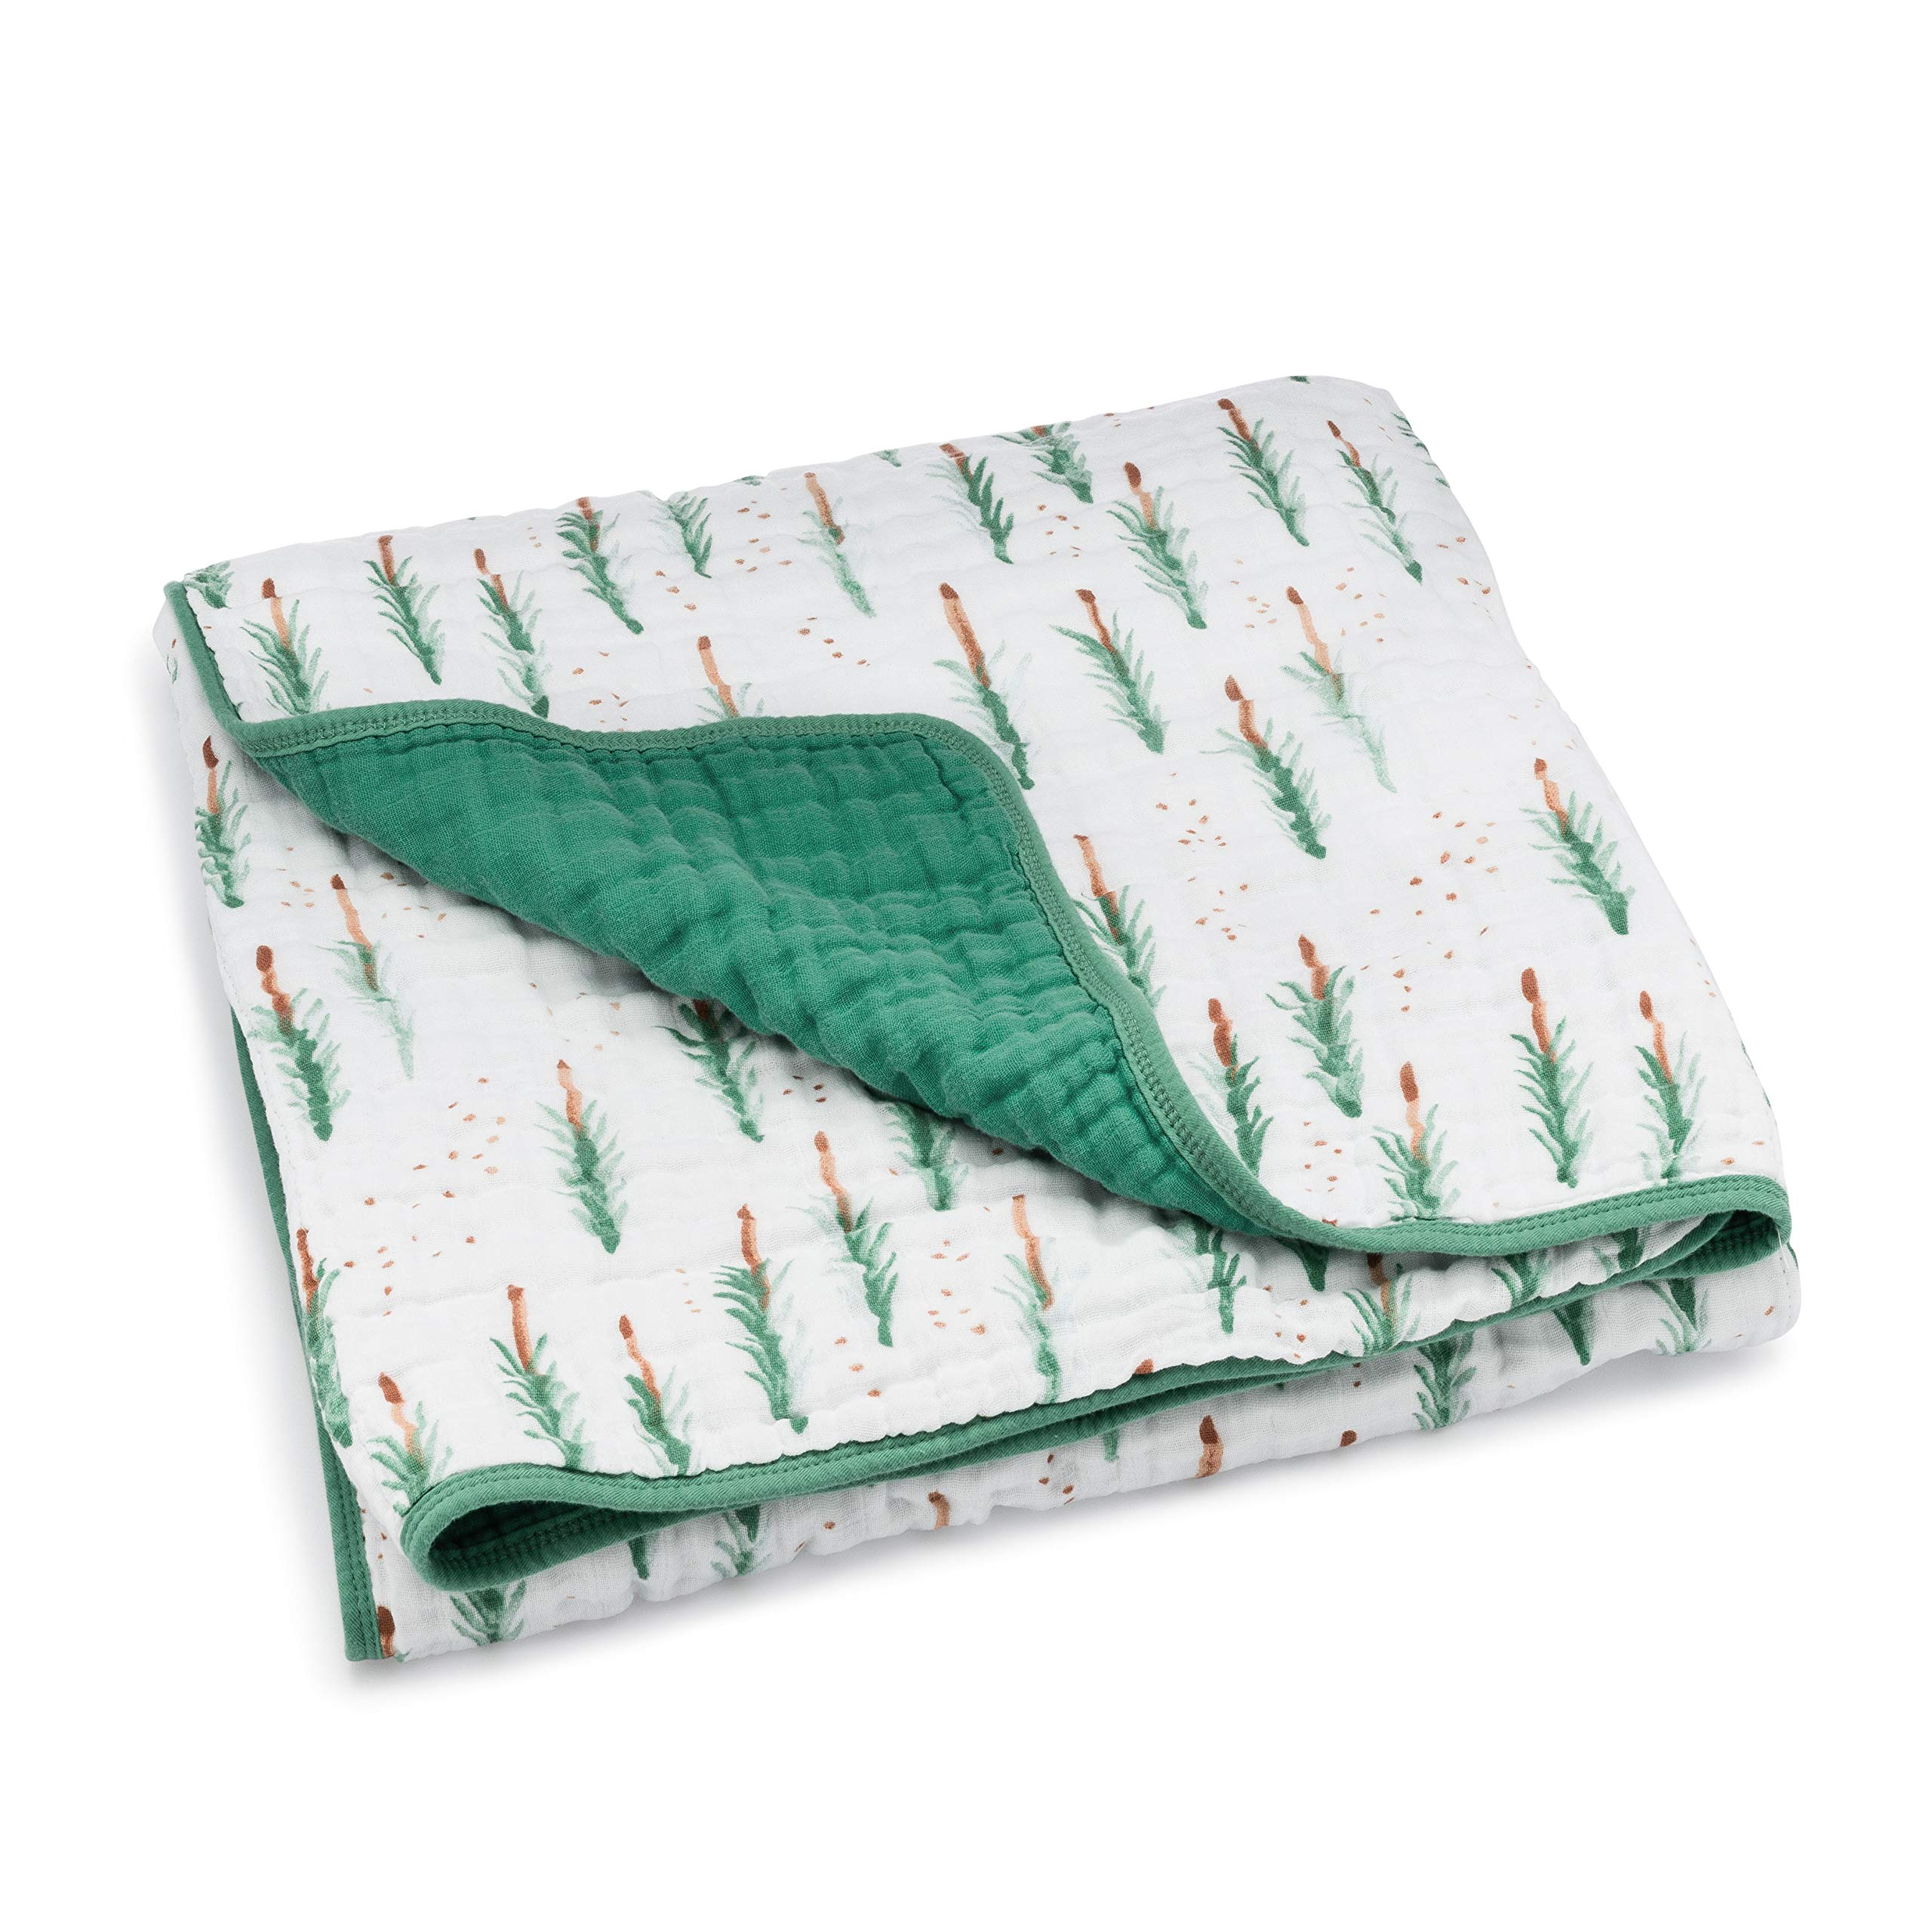 Parker Baby Muslin Blanket - 100% Soft Cotton Baby Quilt and Kids Blanket for Boys - Lodgepole by Parker Baby Co.